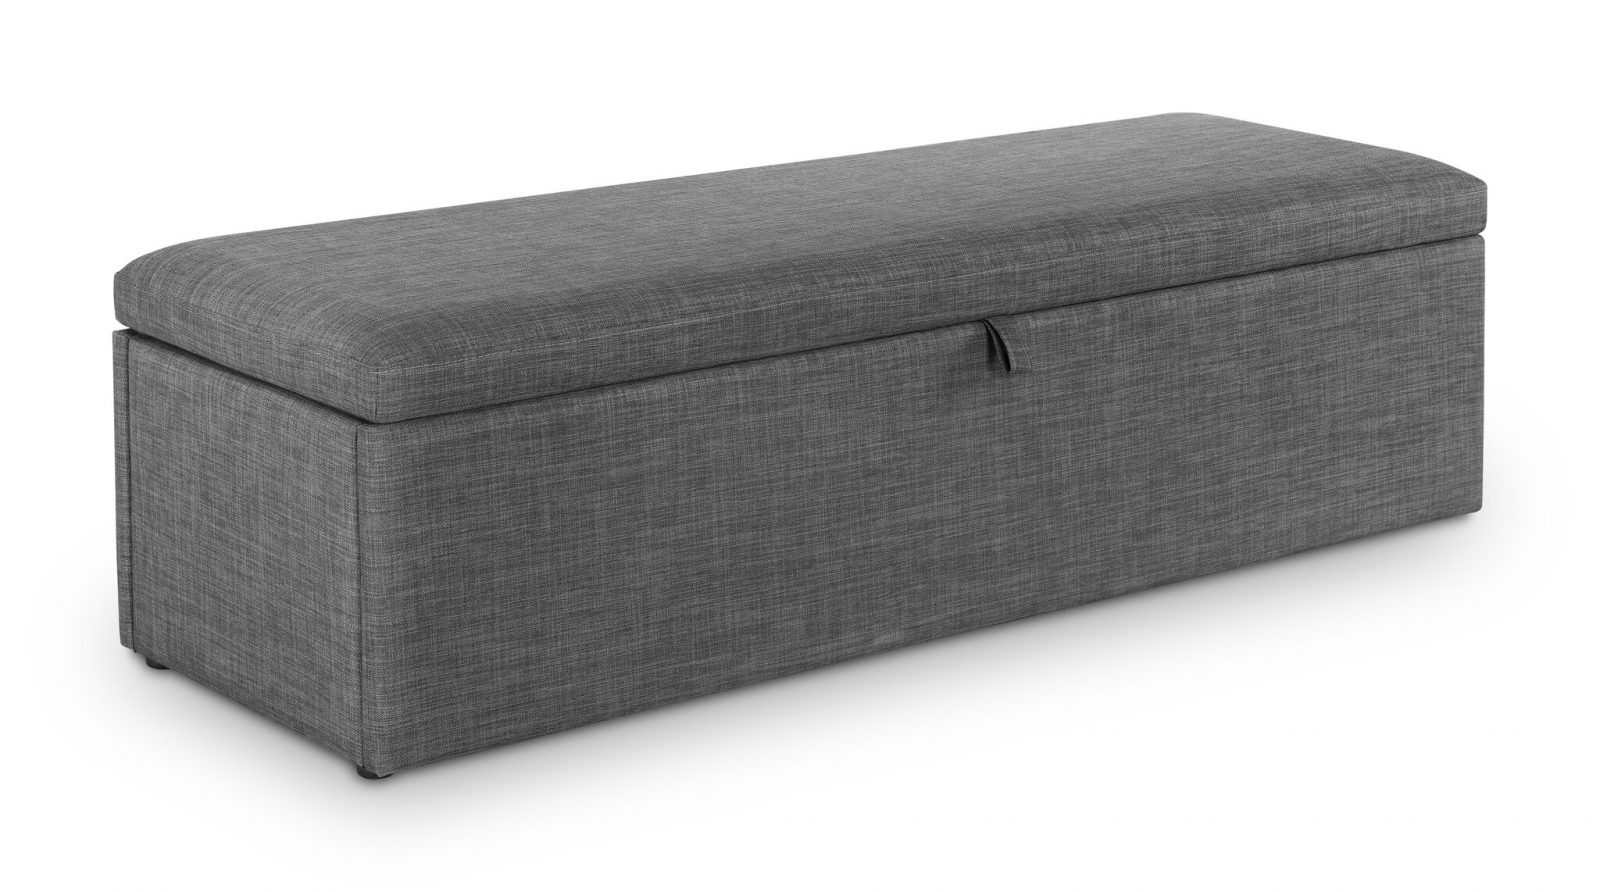 Sorrento Blanket Box